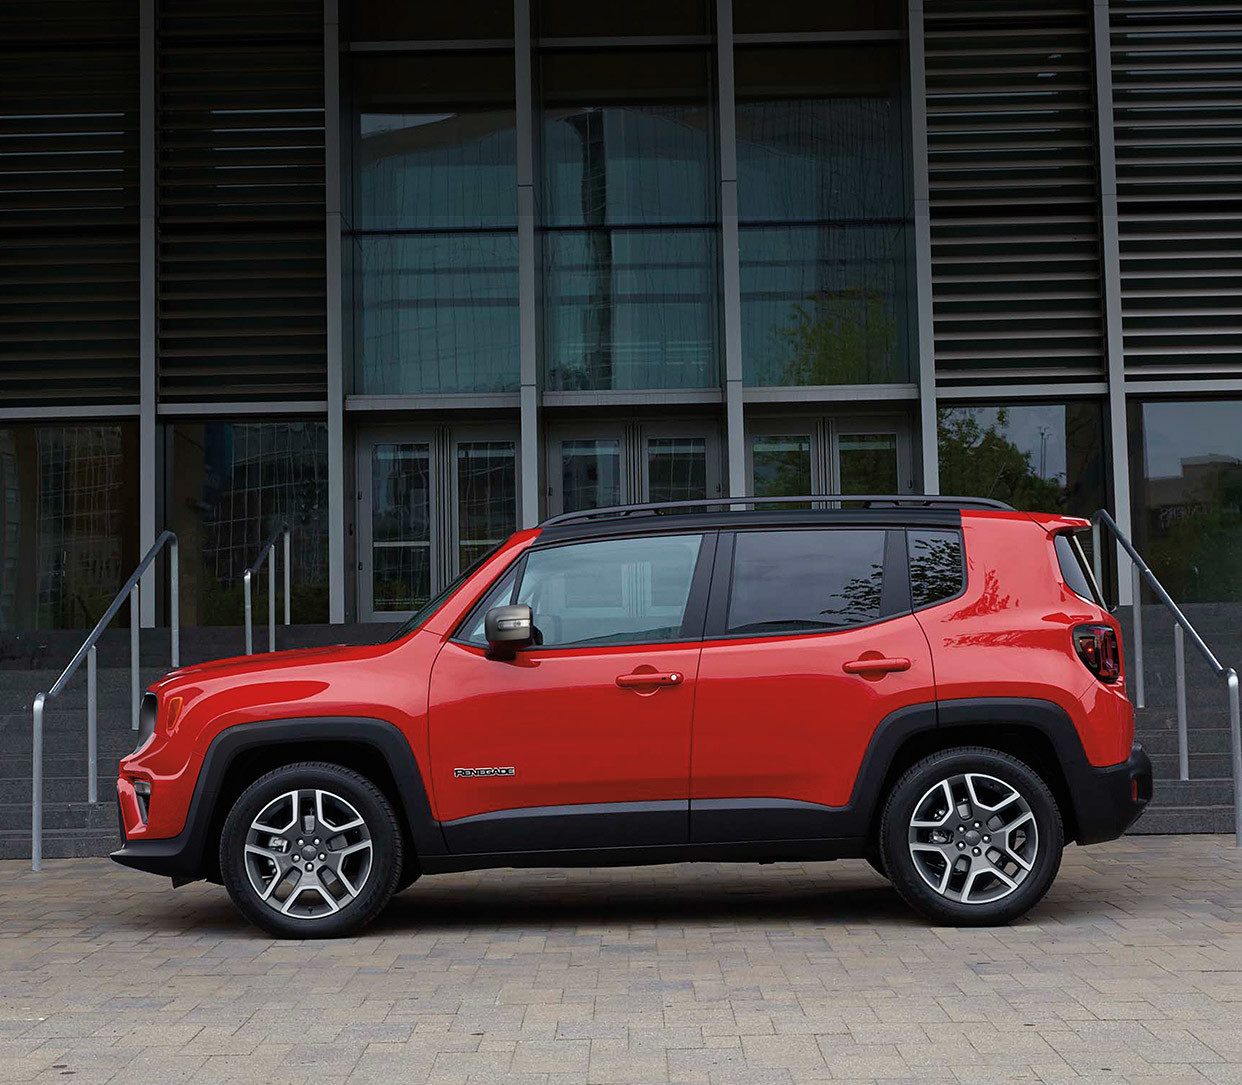 2019 Jeep Renegade red exterior parked